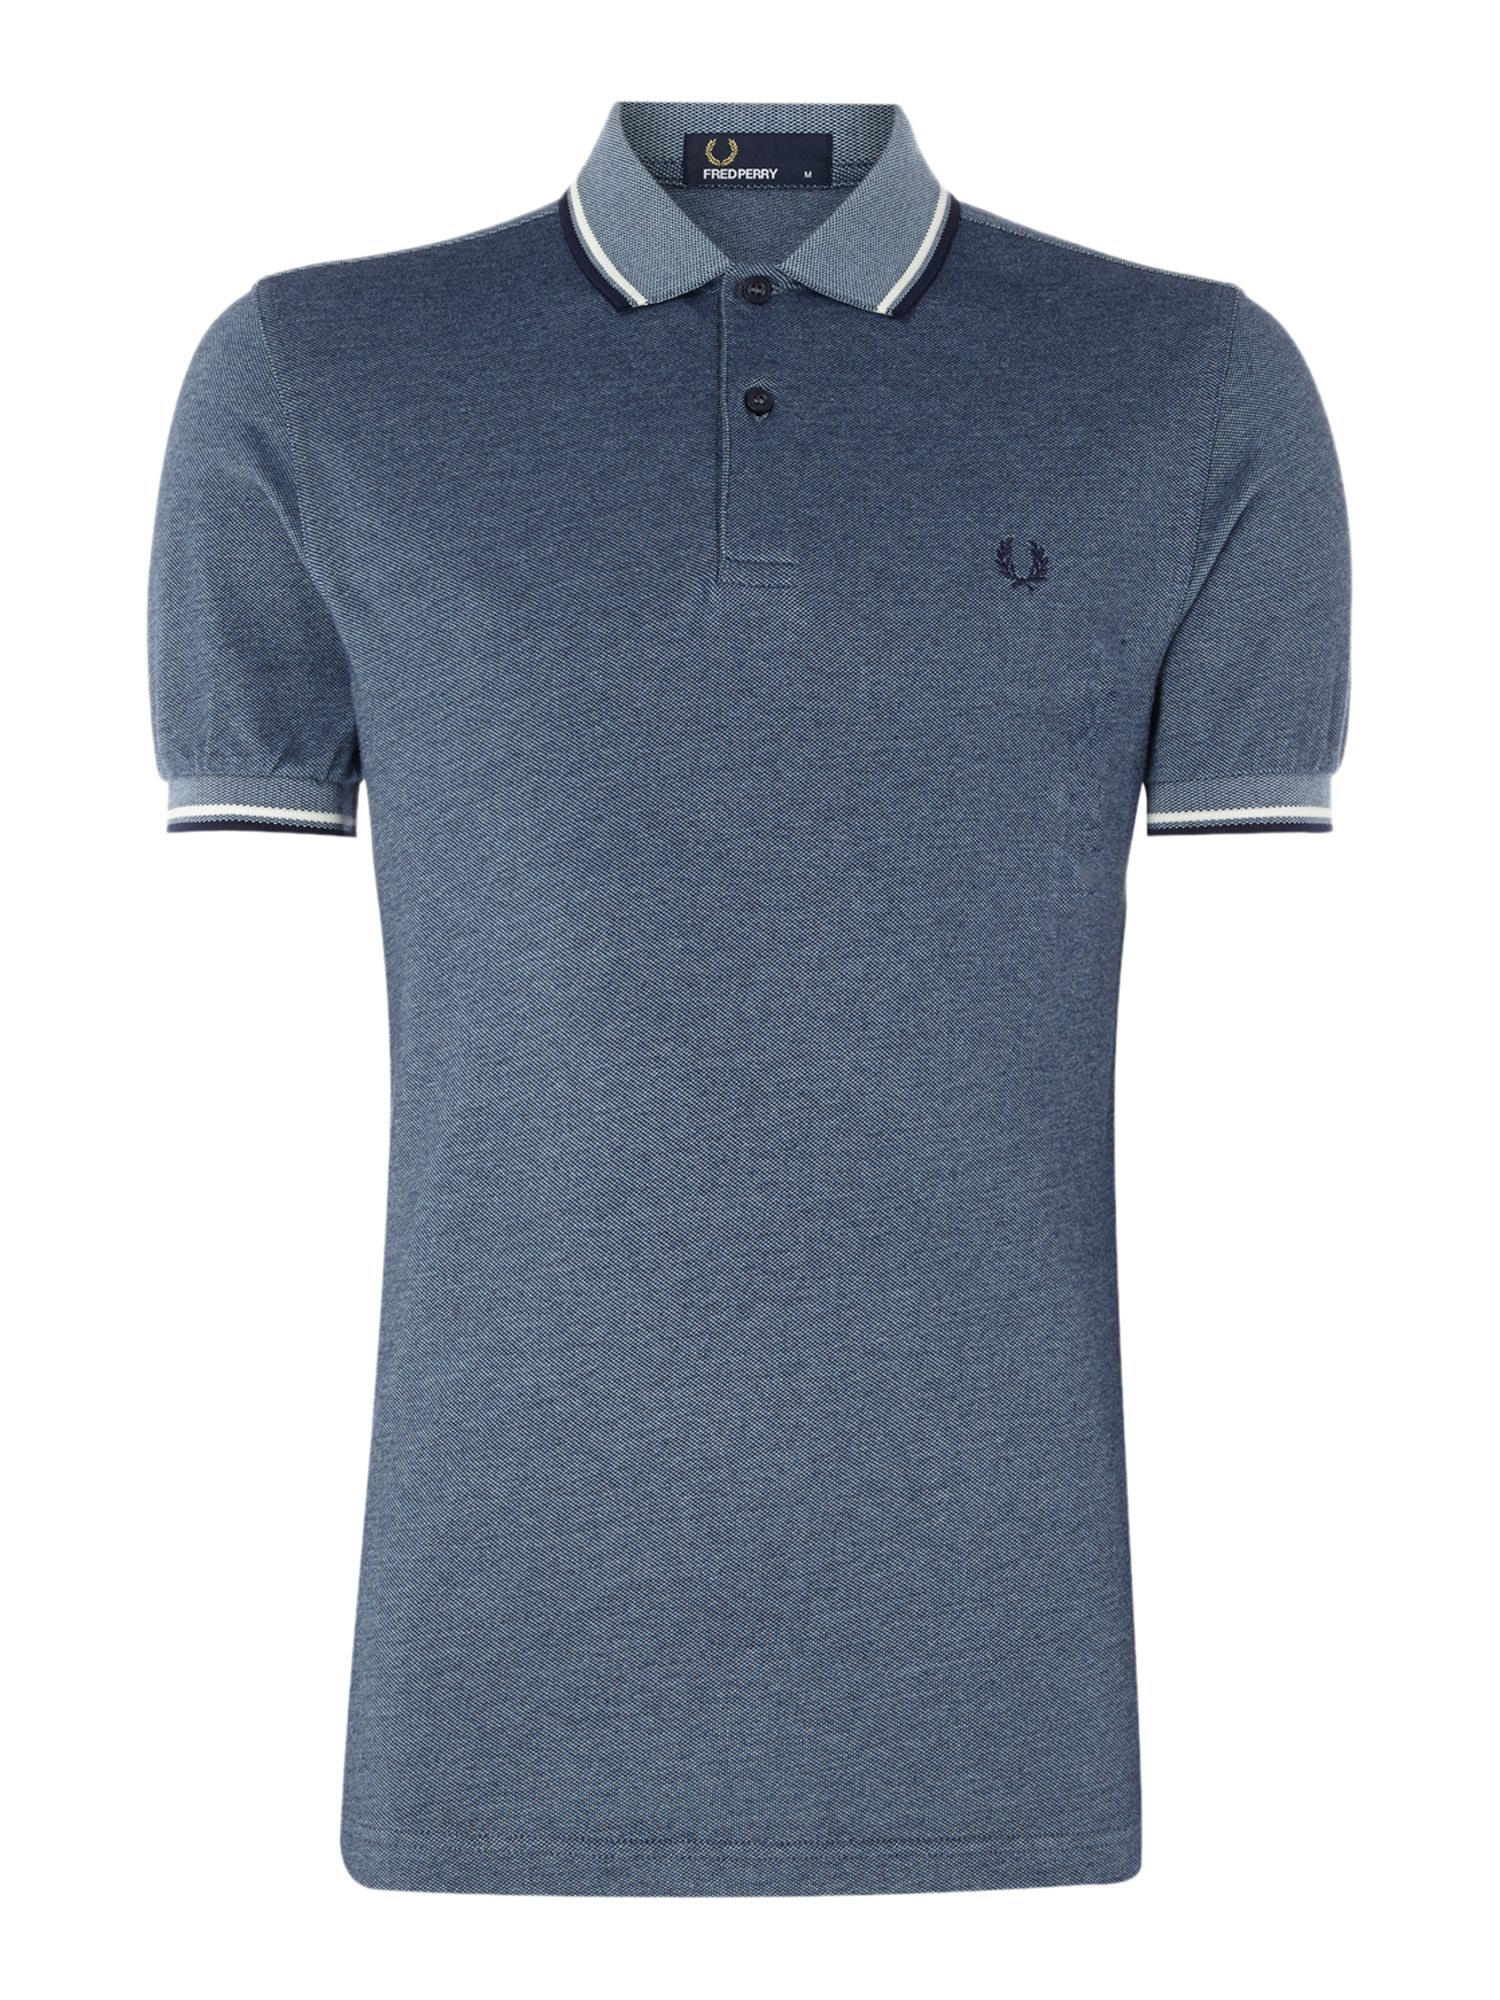 Men's Fred Perry Plain Twin Tipped Polo Shirt, Blue Marl